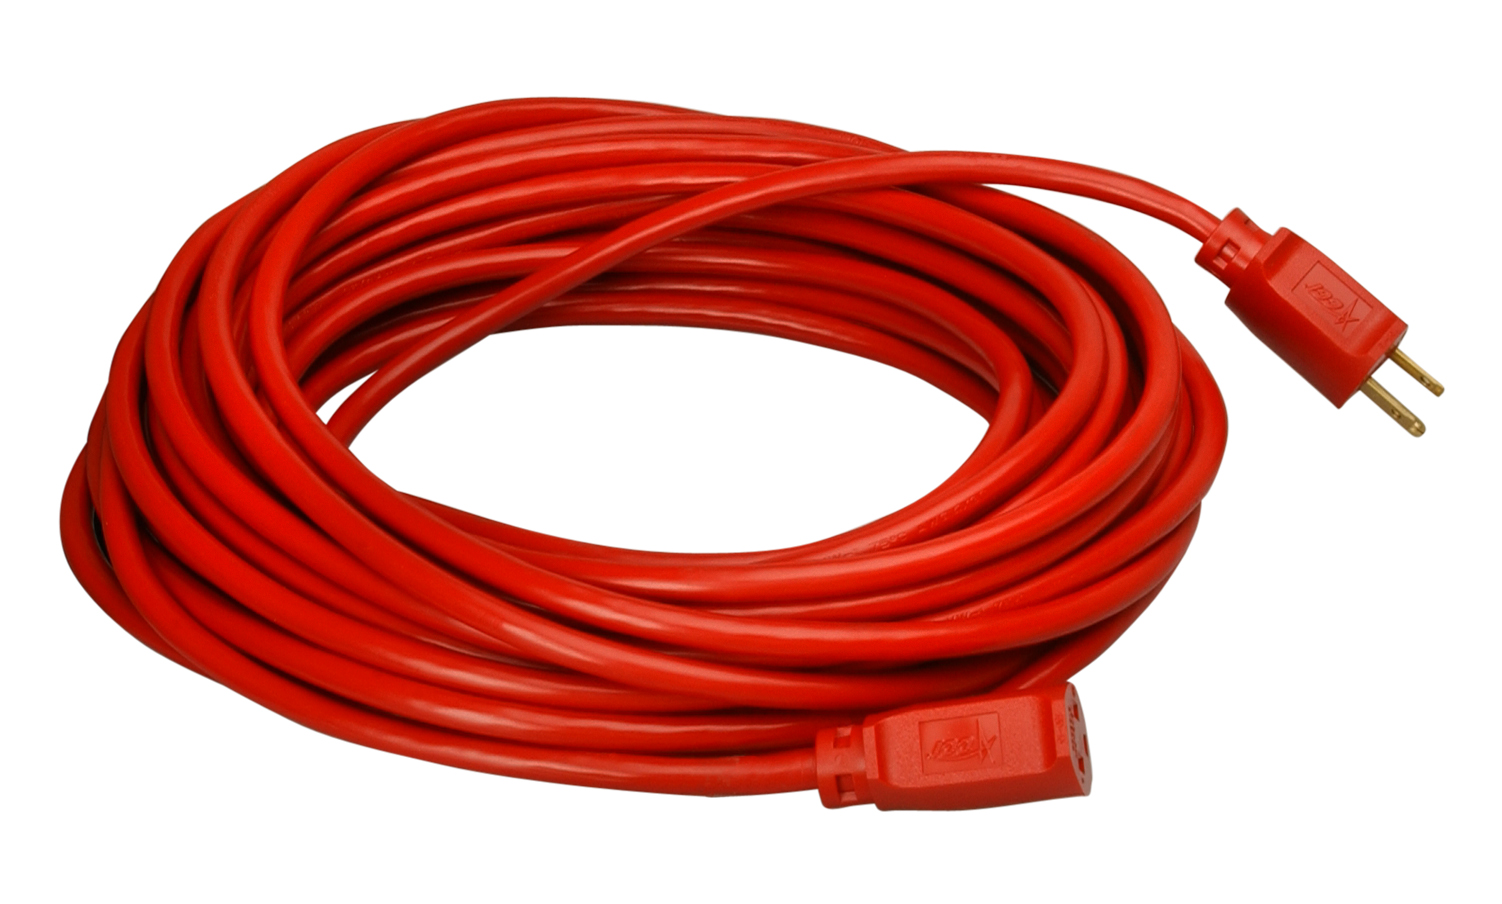 Wire clipart extension cord Downloads Coleman Graphic 02407 02409